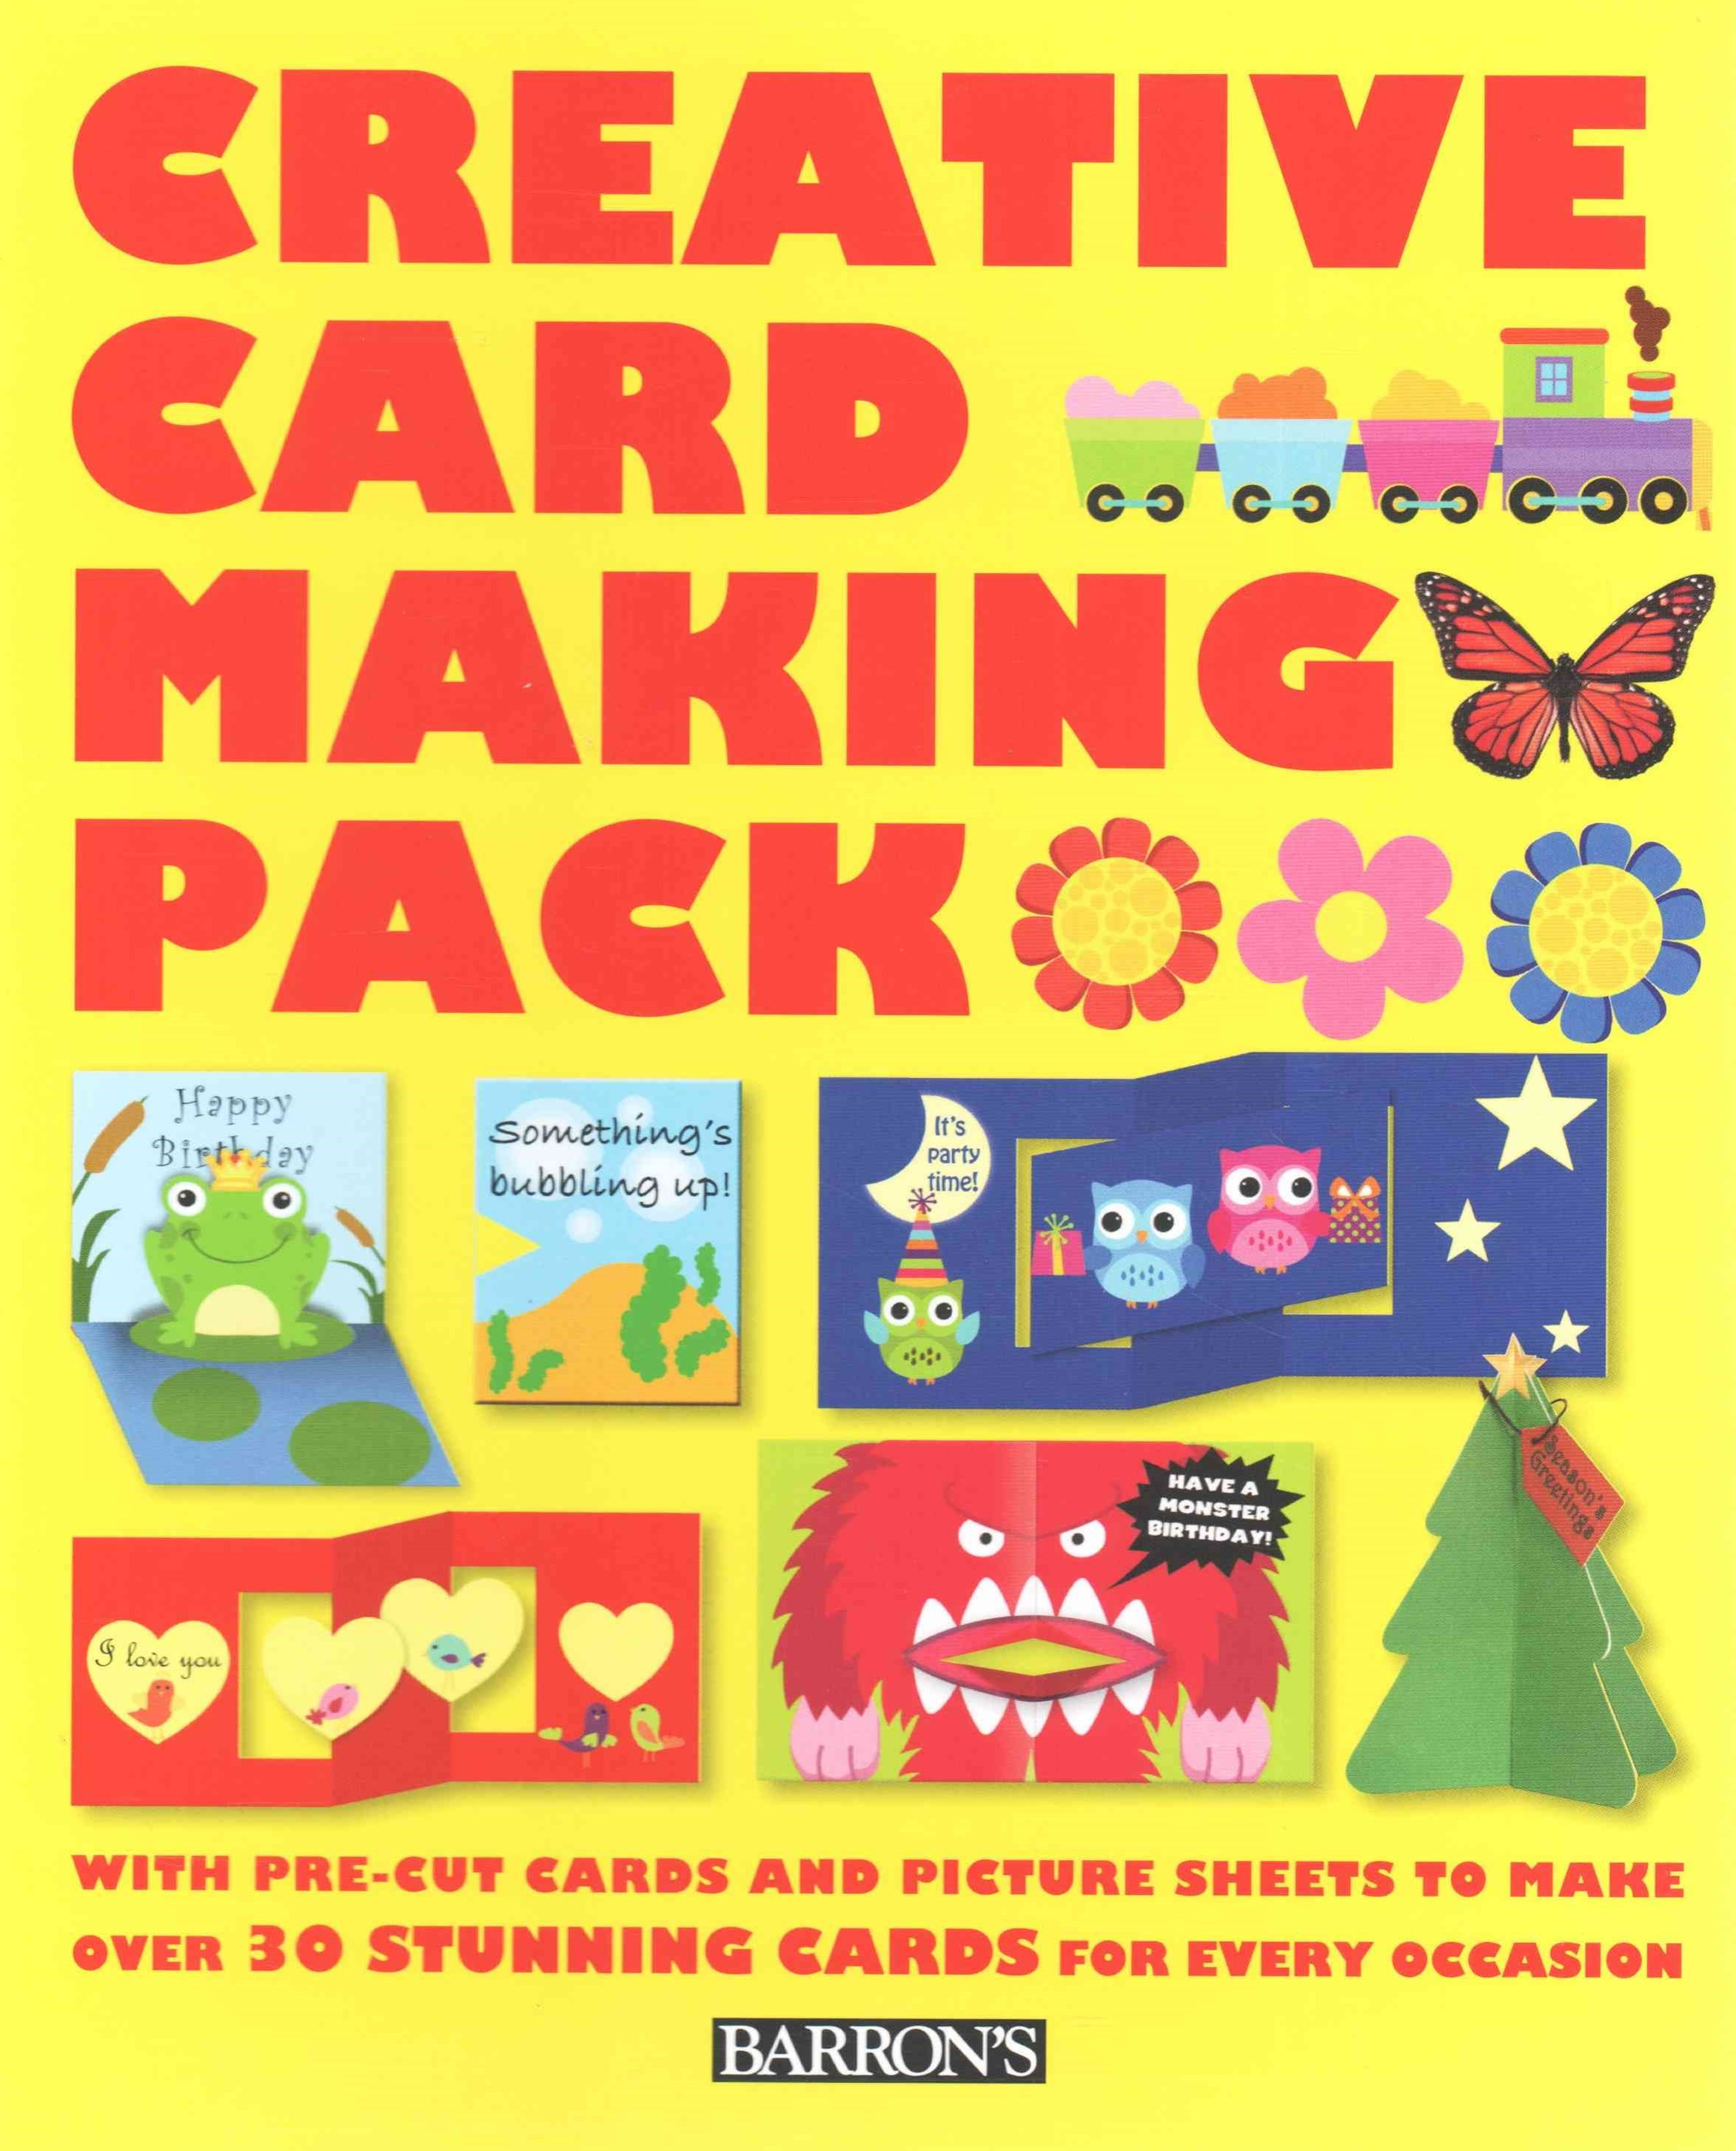 The Creative Card Making Pack